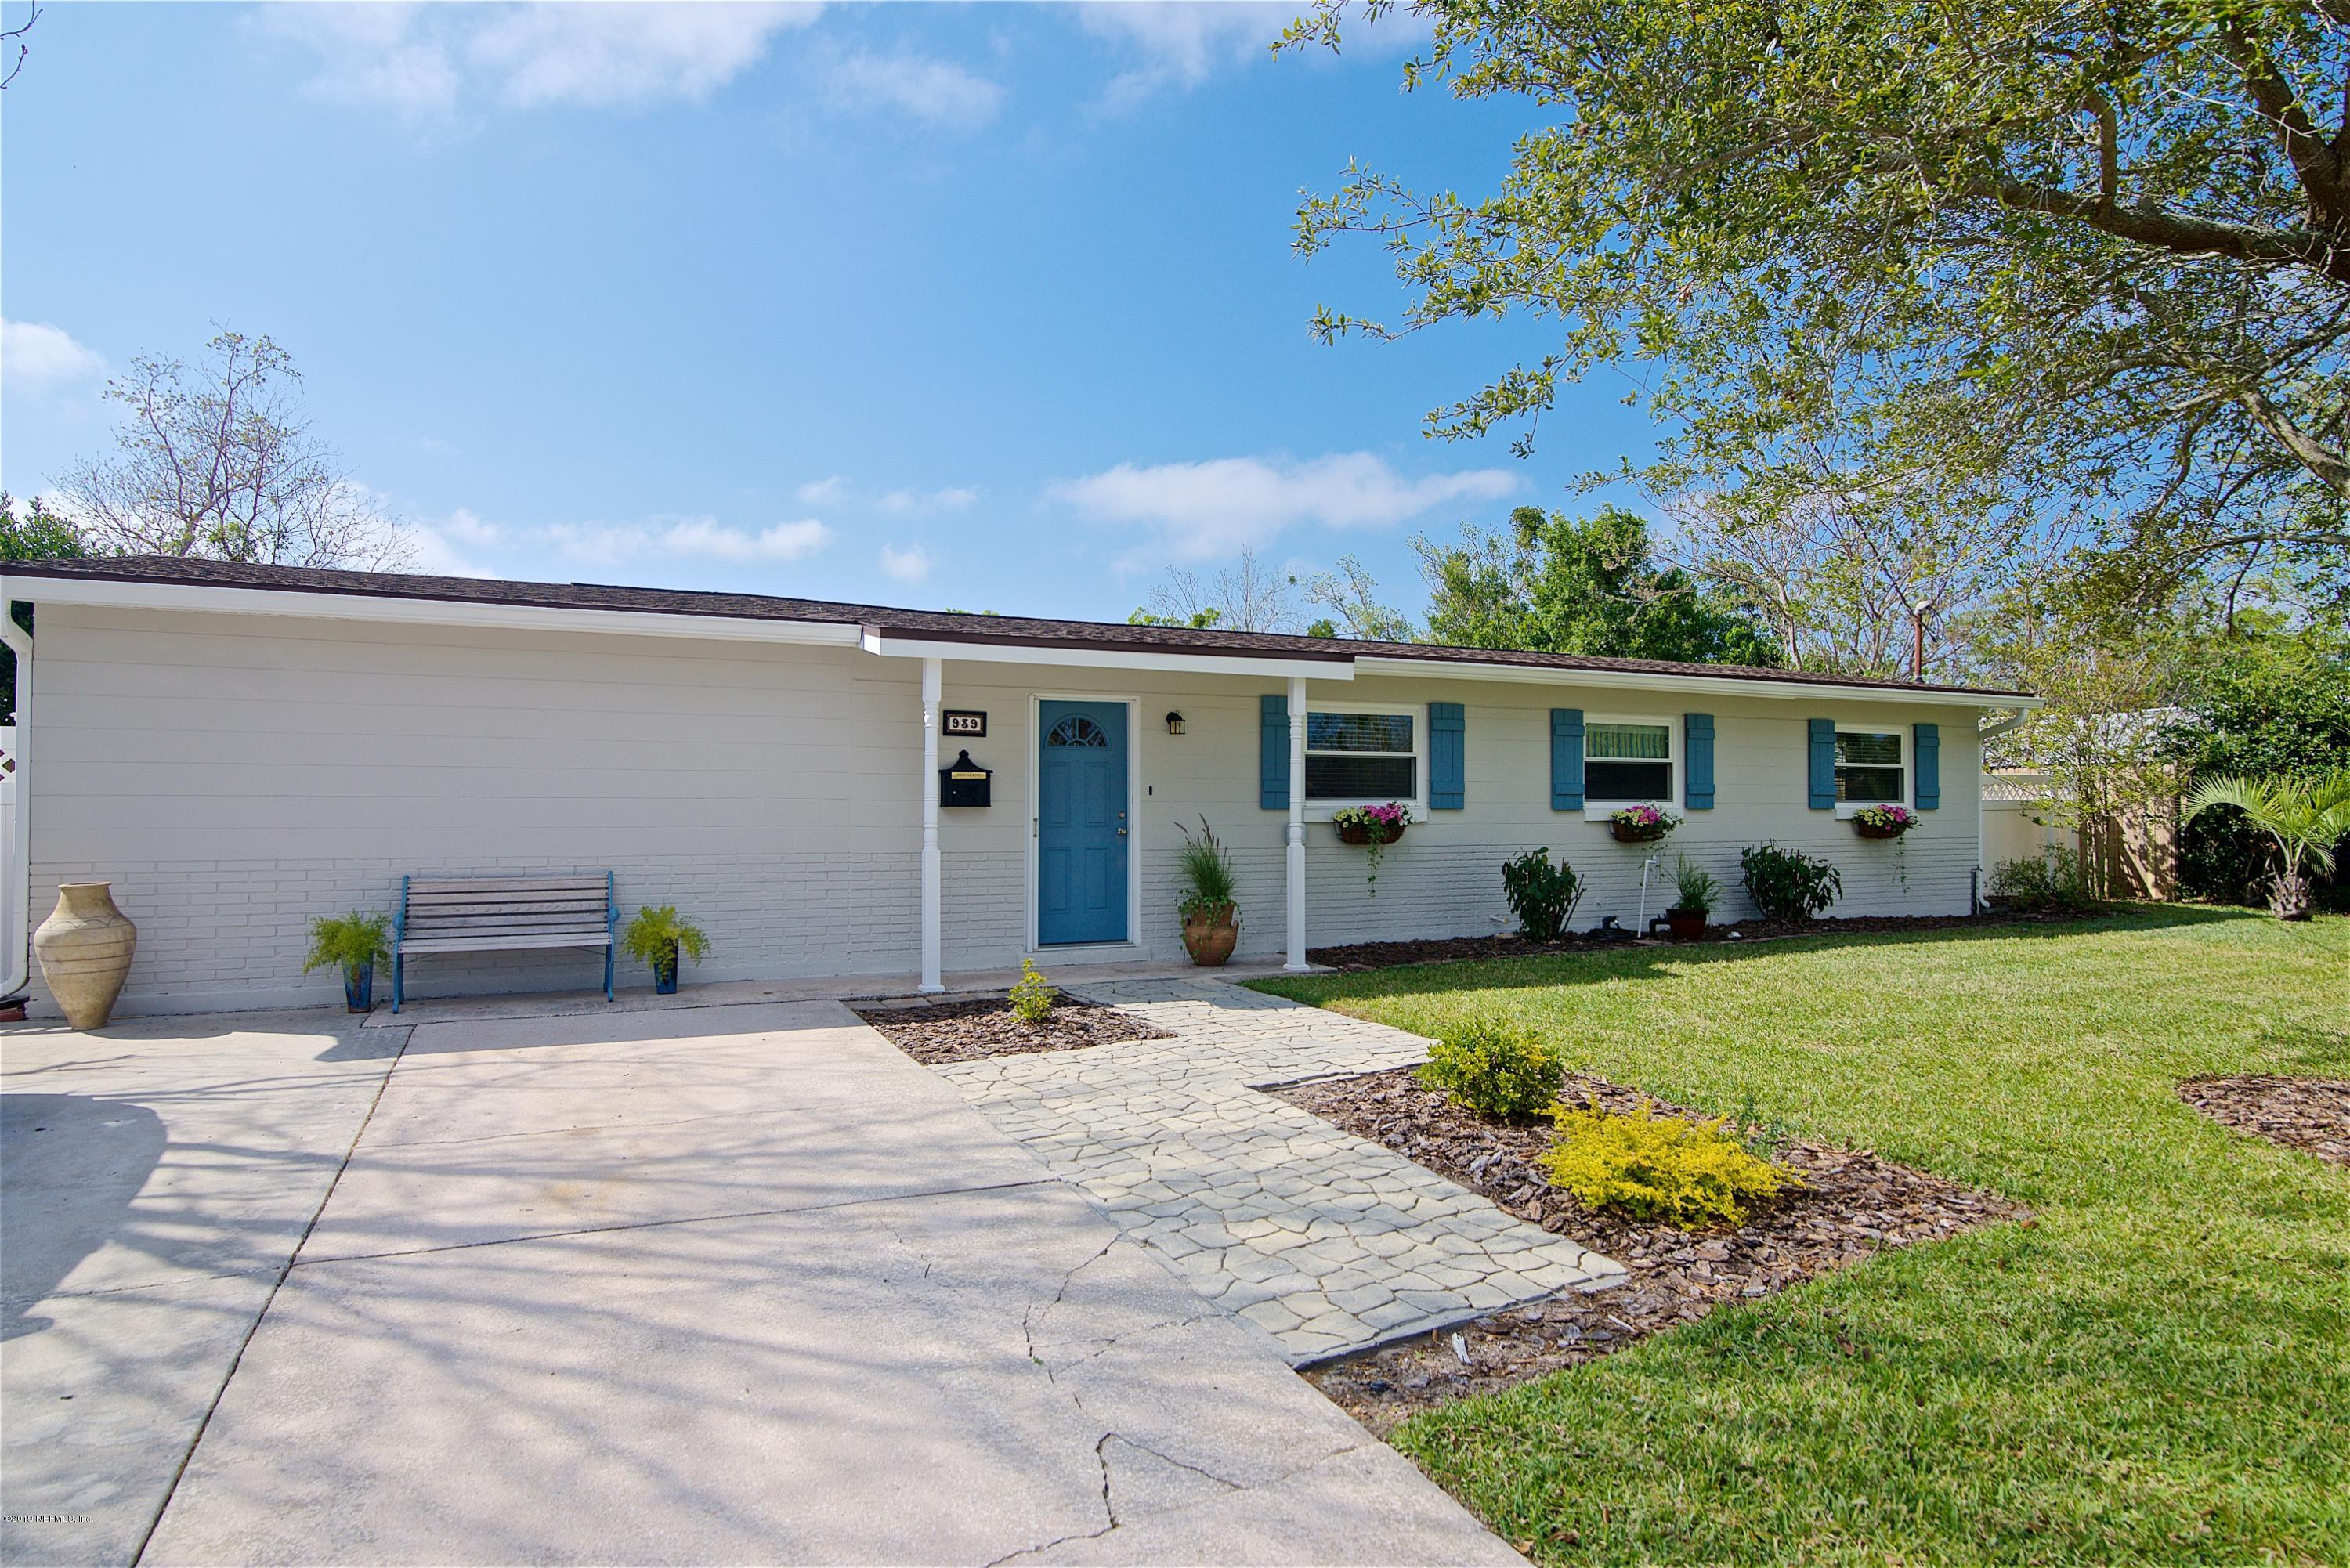 939 AMBERJACK, ATLANTIC BEACH, FLORIDA 32233, 4 Bedrooms Bedrooms, ,2 BathroomsBathrooms,Residential - single family,For sale,AMBERJACK,986752